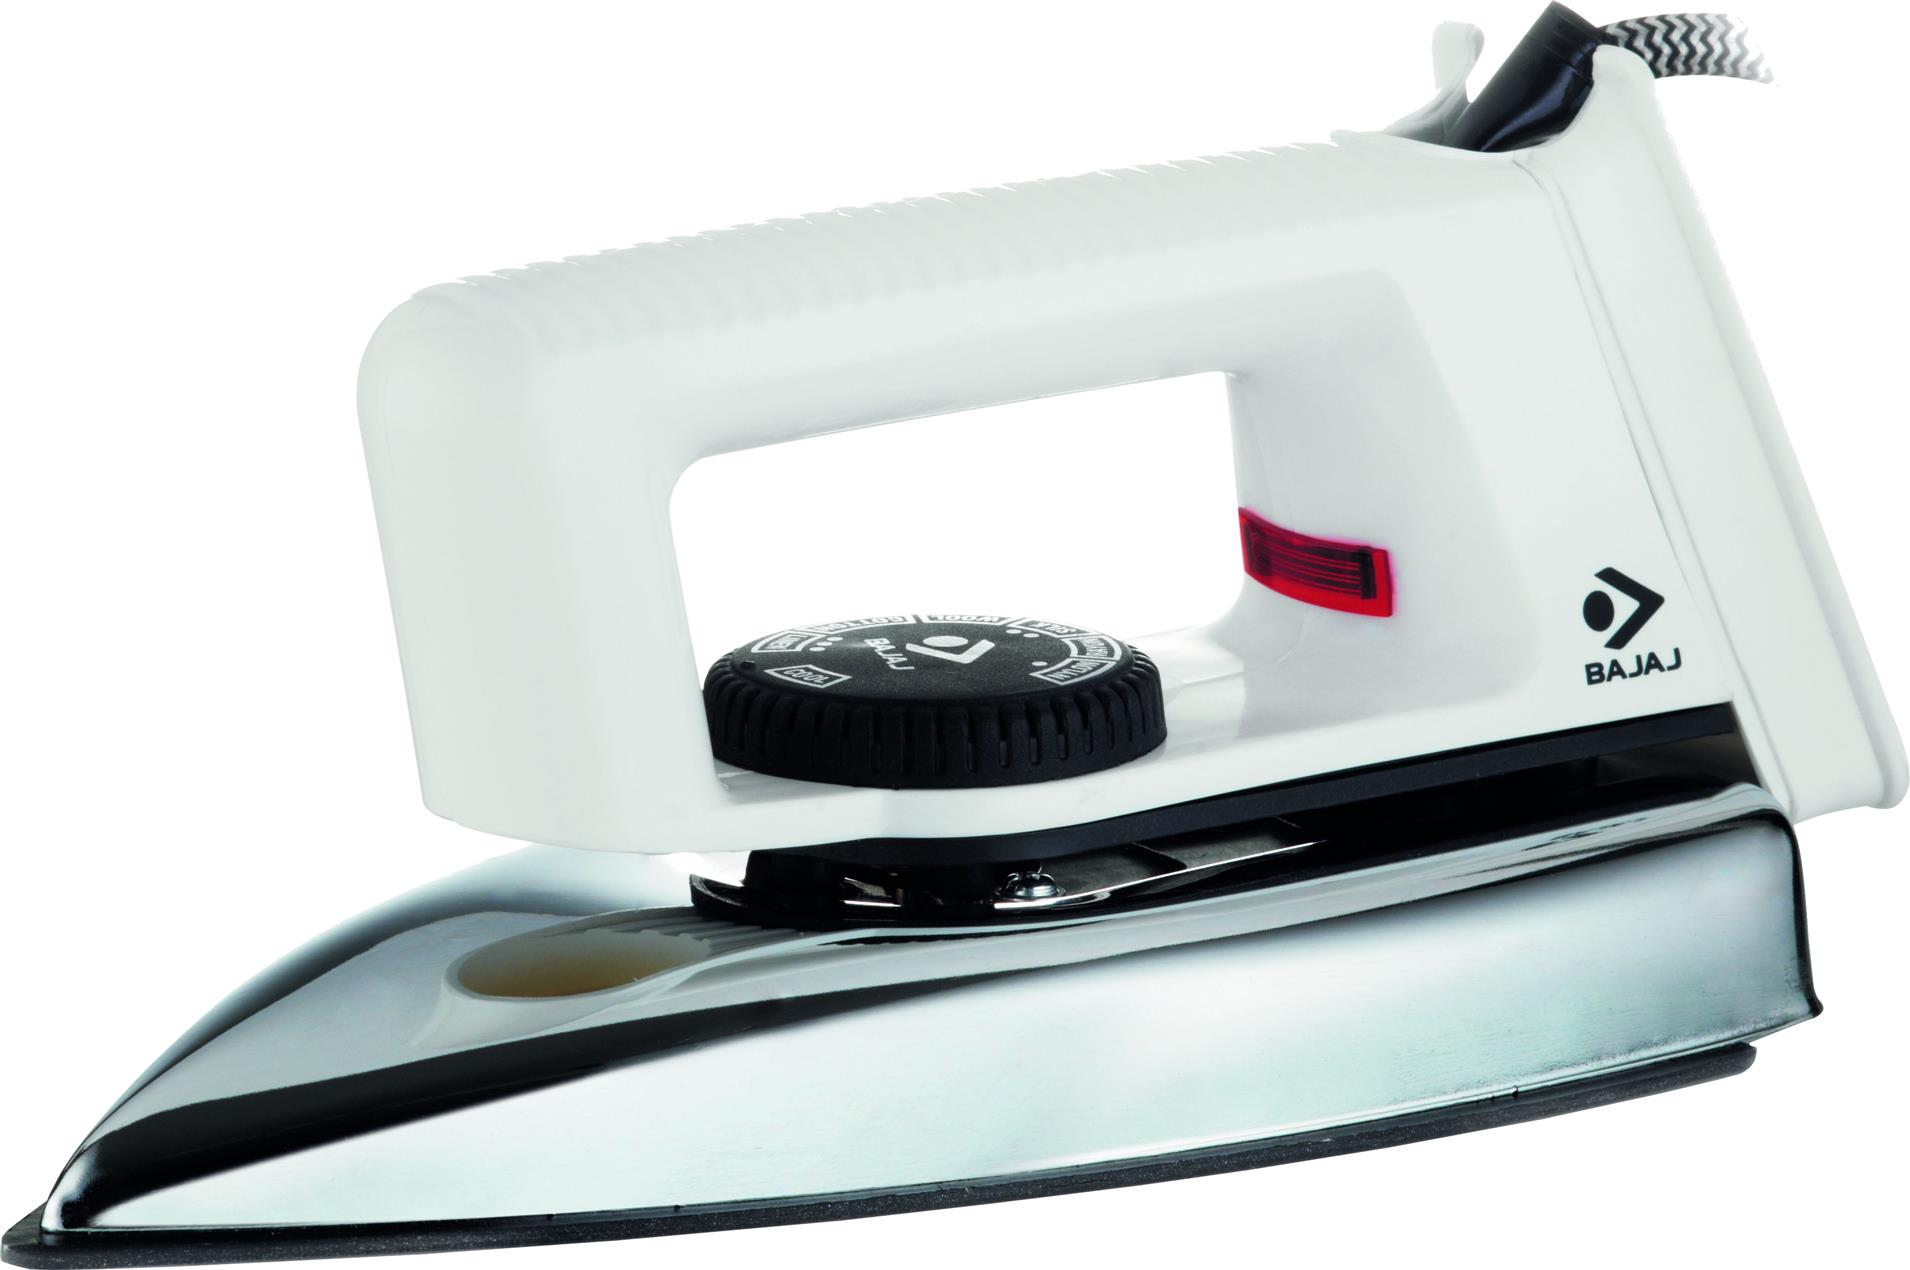 BAJAJ POPULAR 750 W DRY IRON (WHITE)